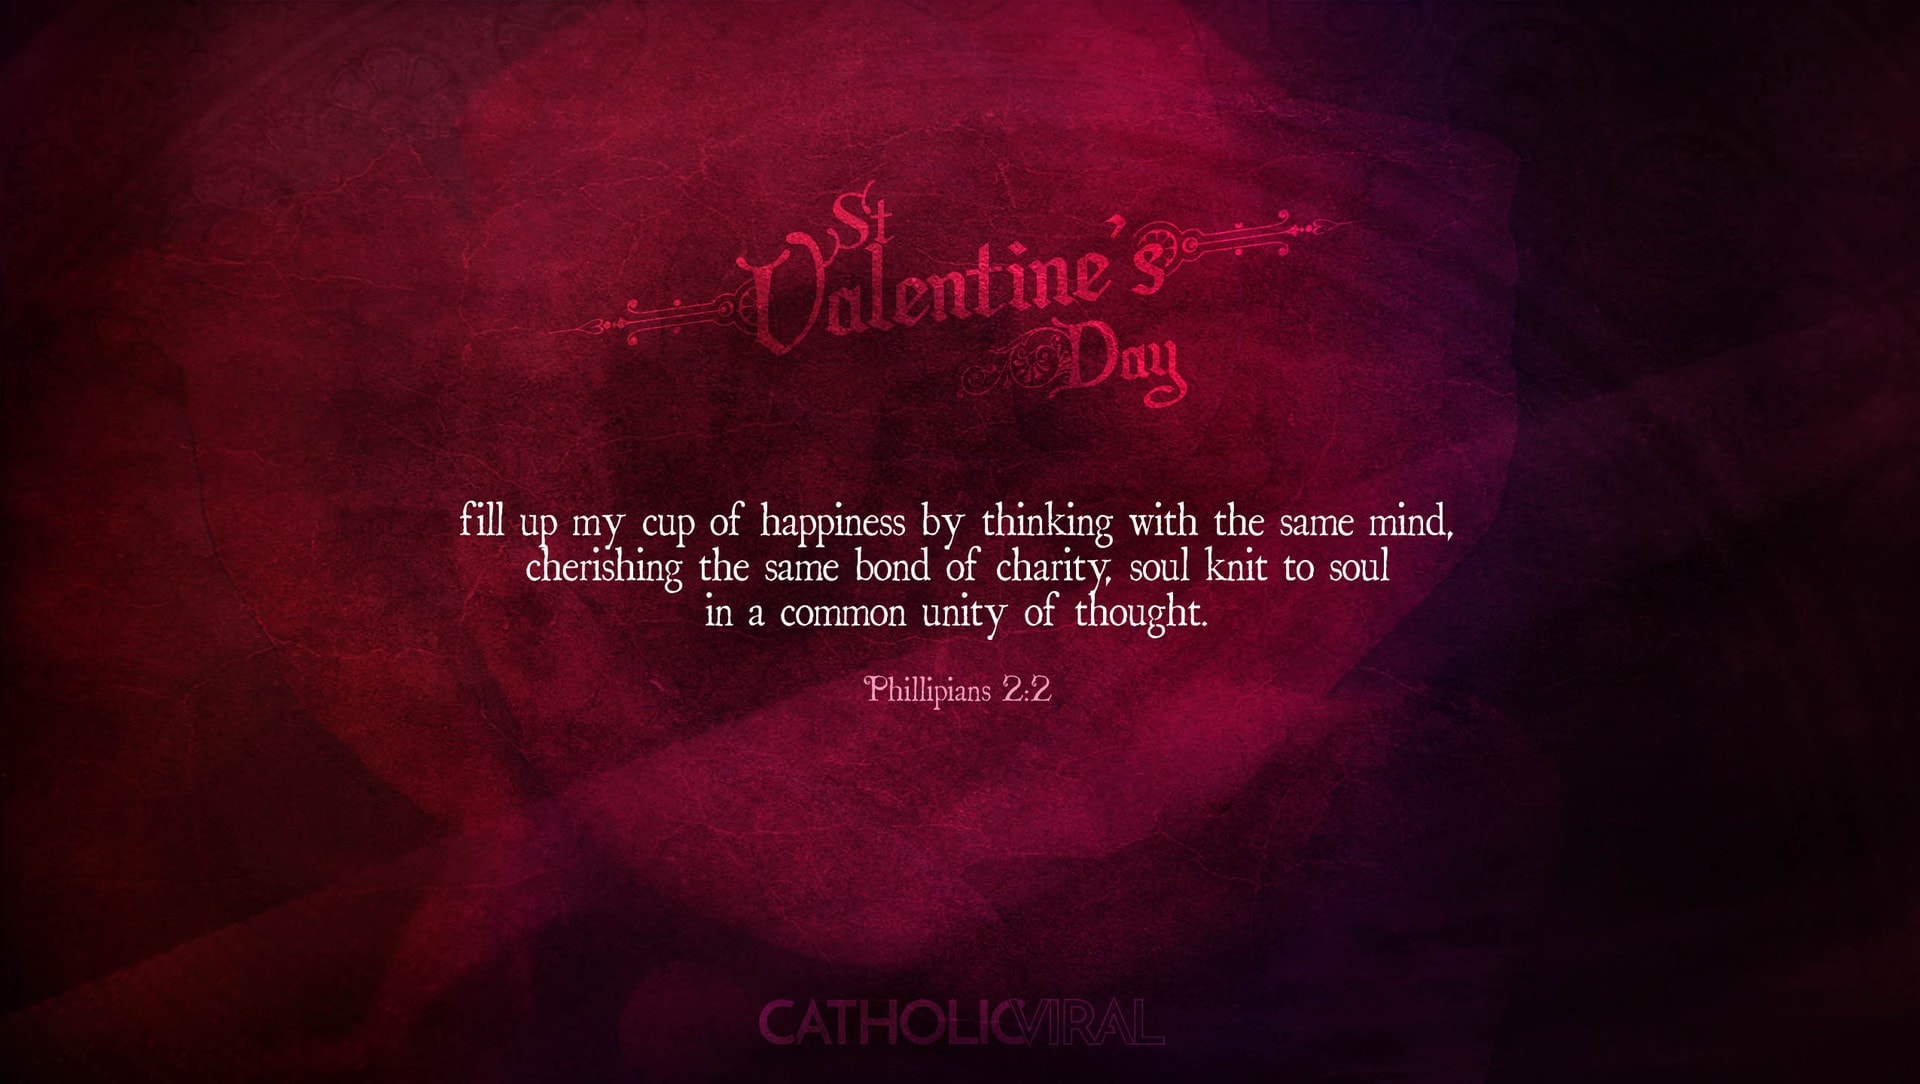 25 Valentines Day Bible Verses On Love Free Wallpapers